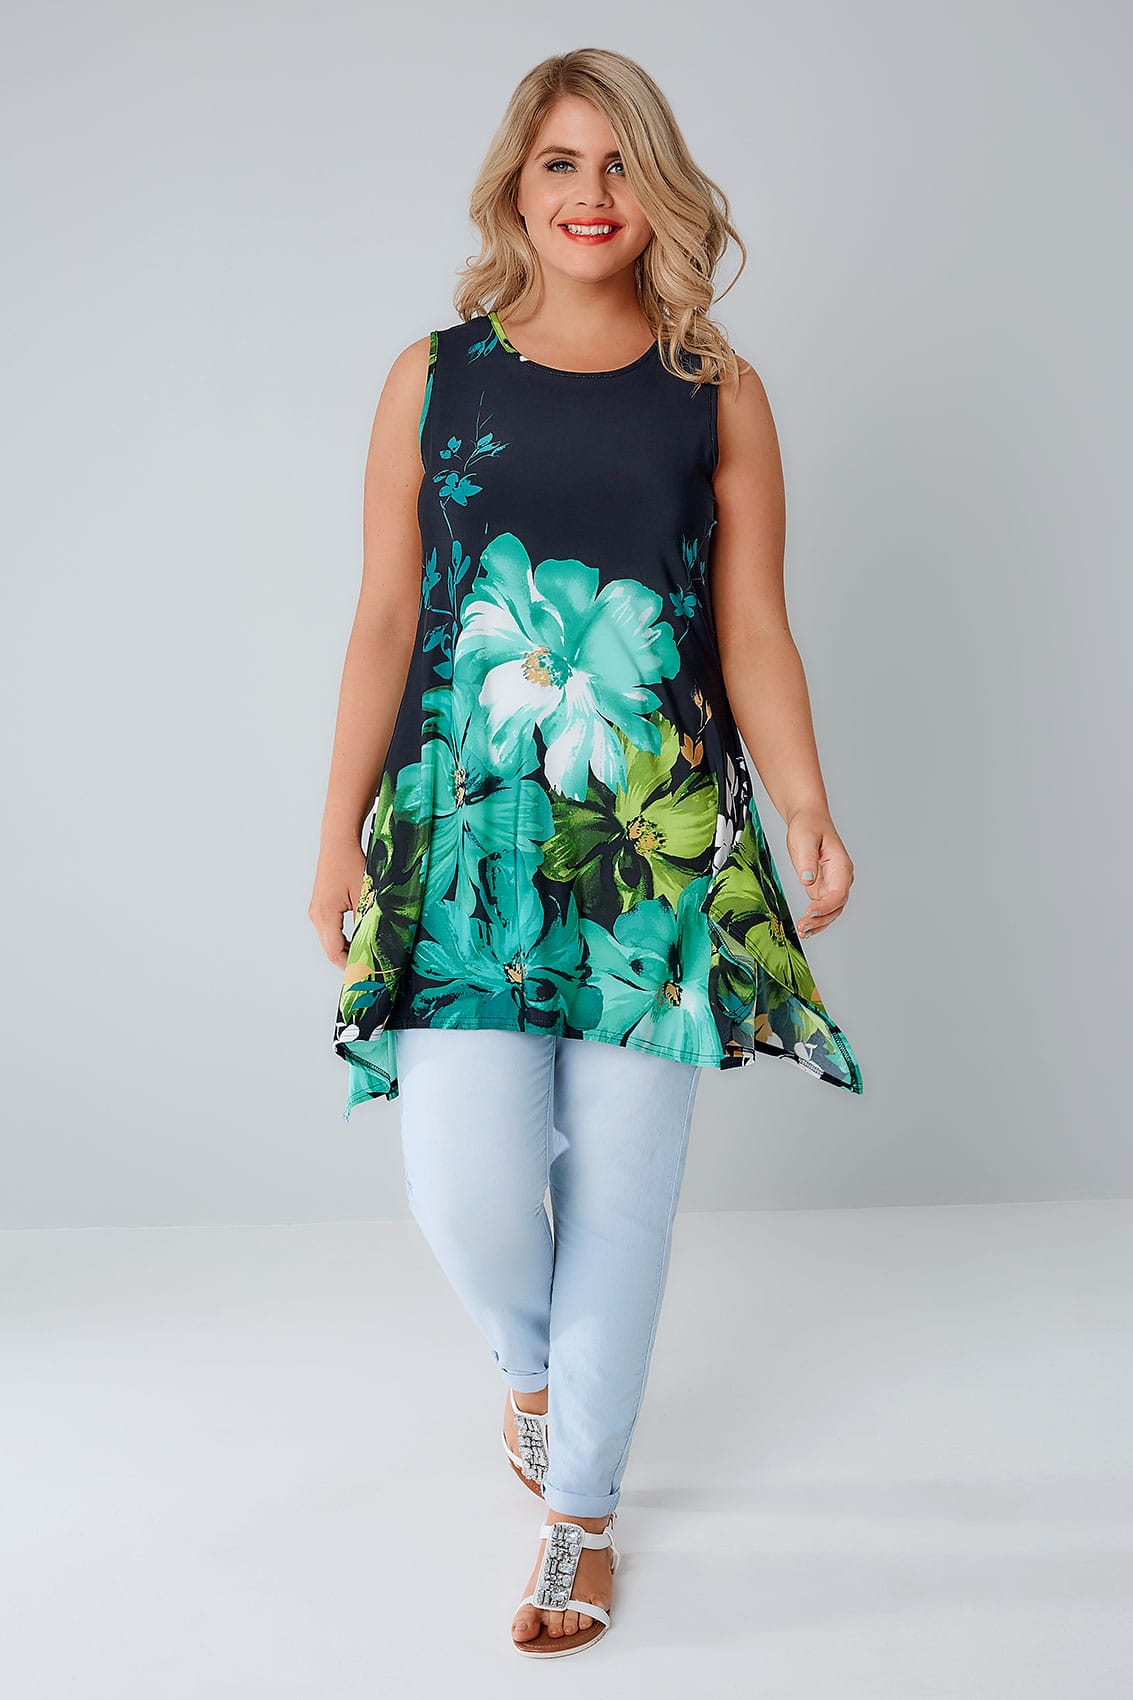 navy green floral slinky stretch sleeveless top with hanky hem plus size 16 to 36. Black Bedroom Furniture Sets. Home Design Ideas